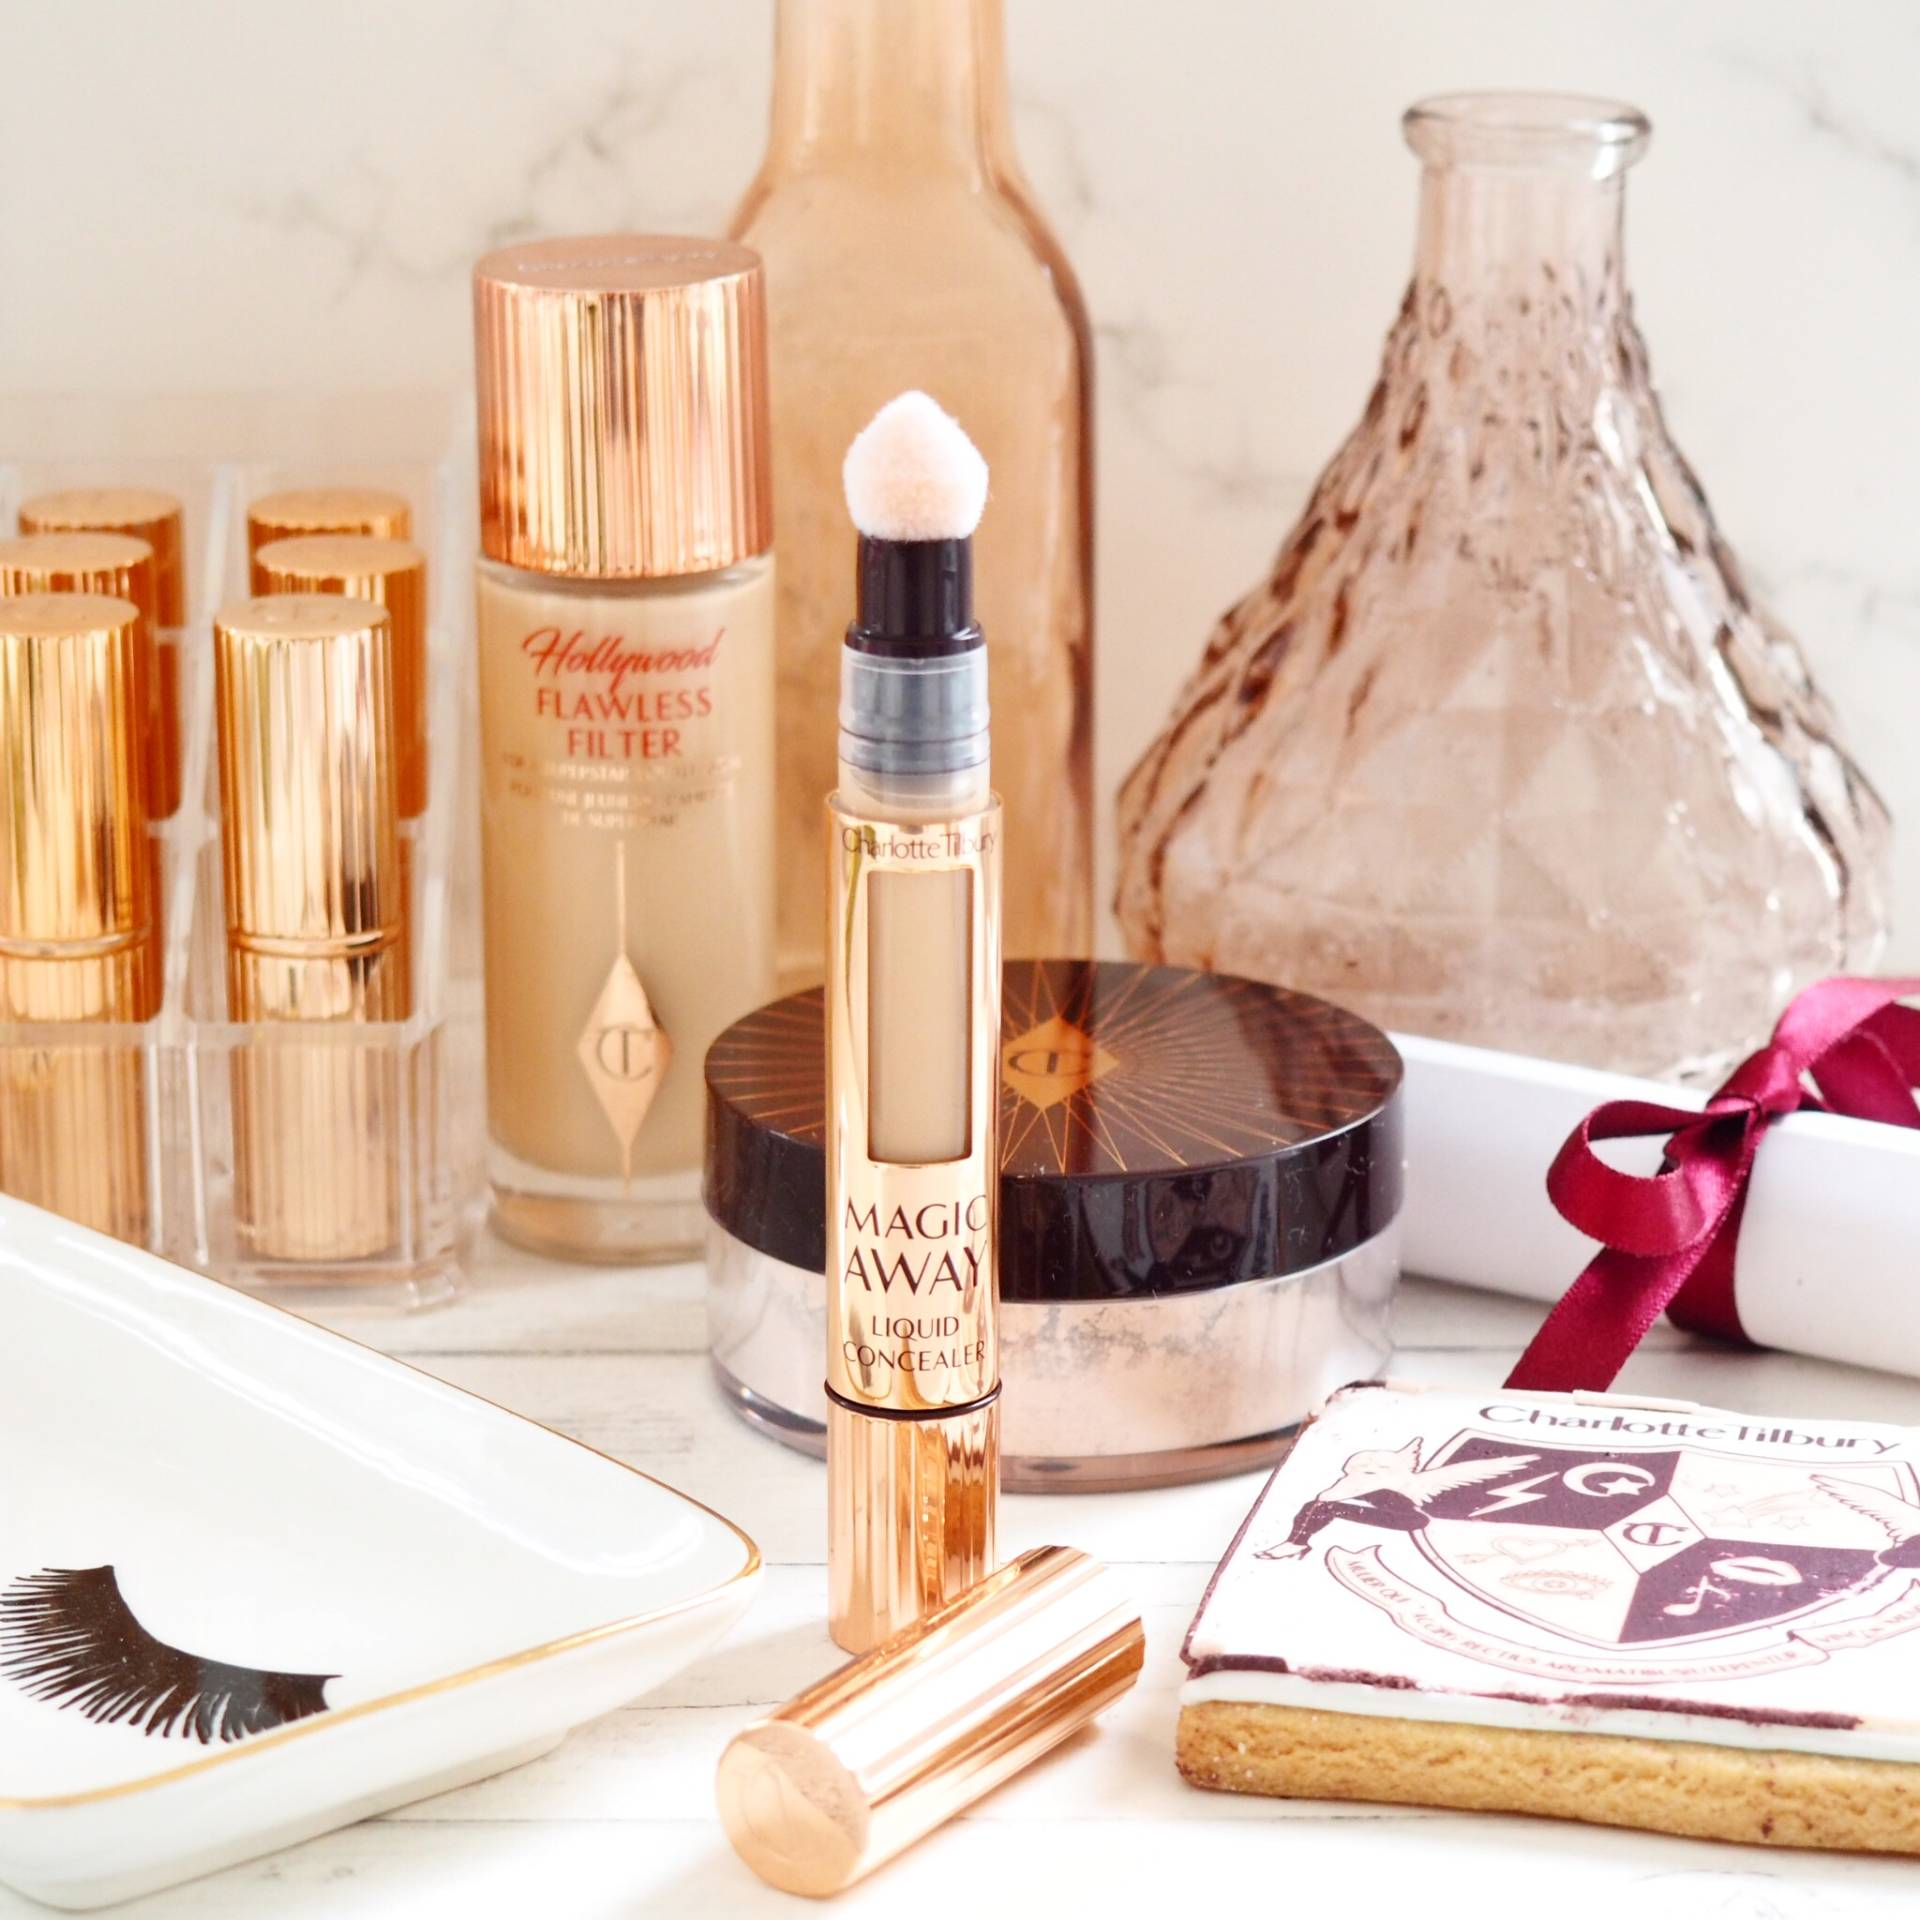 Charlotte Tilbury Magic Away Liquid Concealer Review